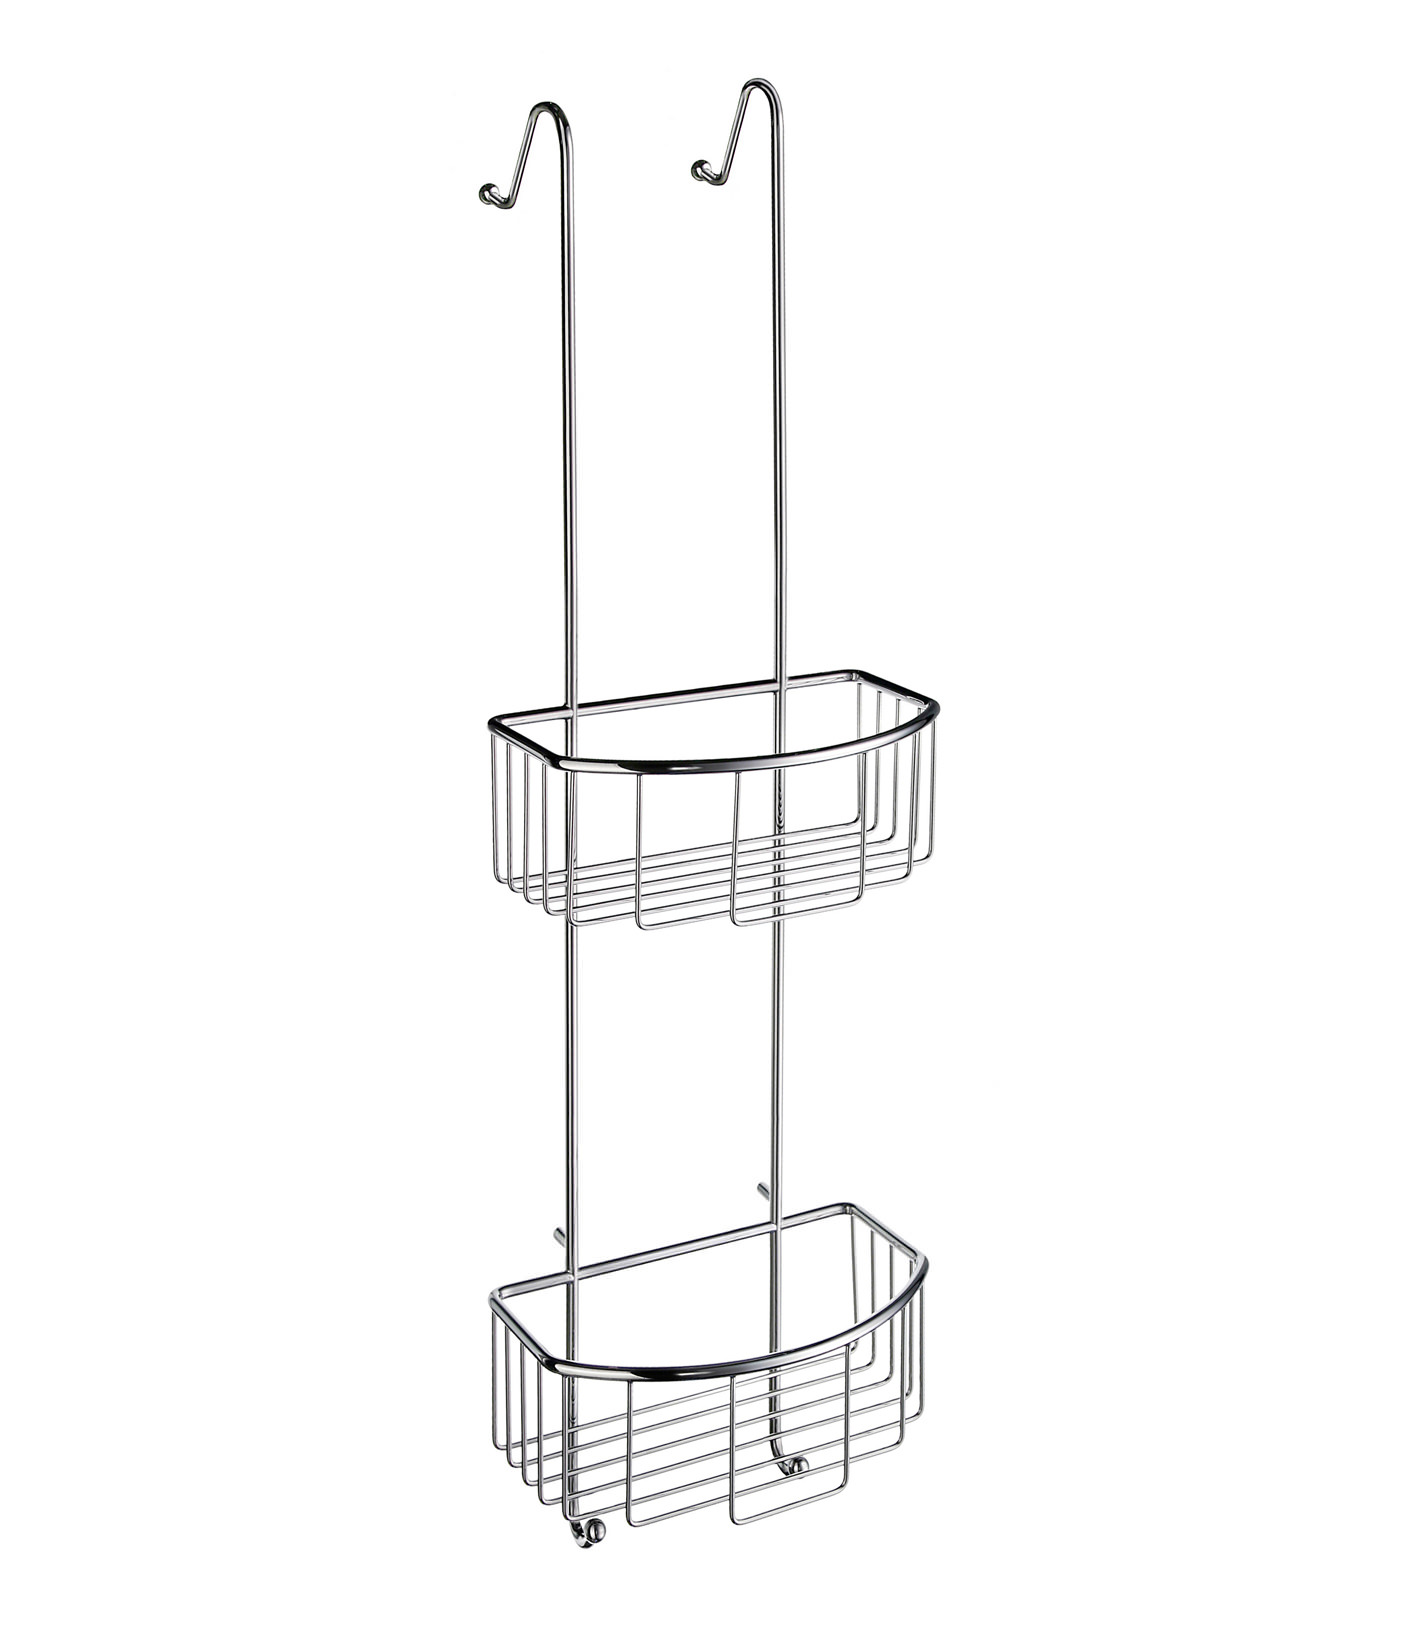 Smedbo Sideline Shower Basket Double 220 X 130mm